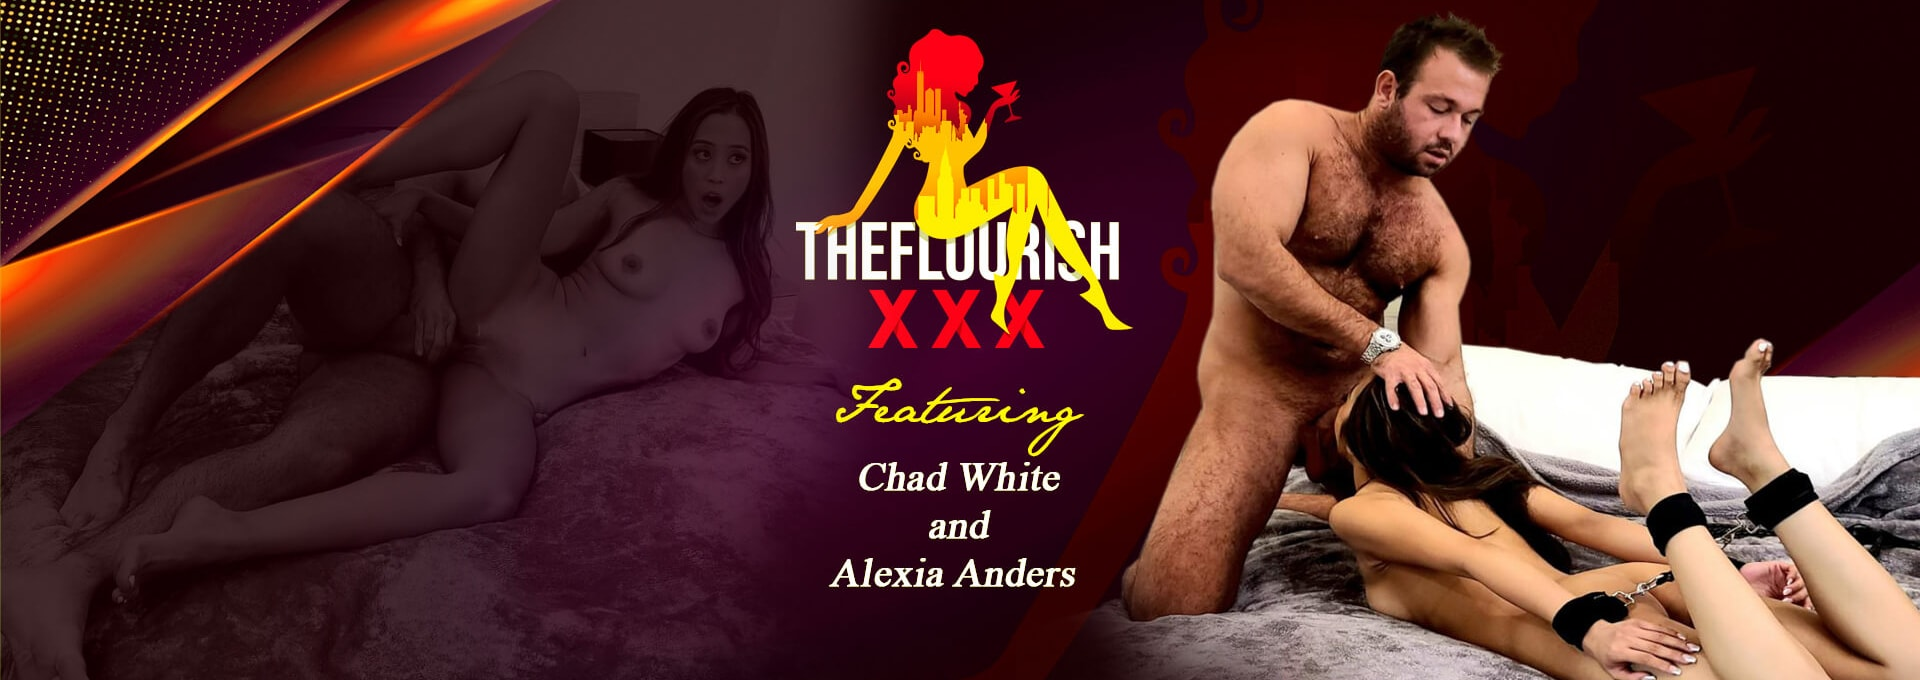 Chad White and Alexia Anders